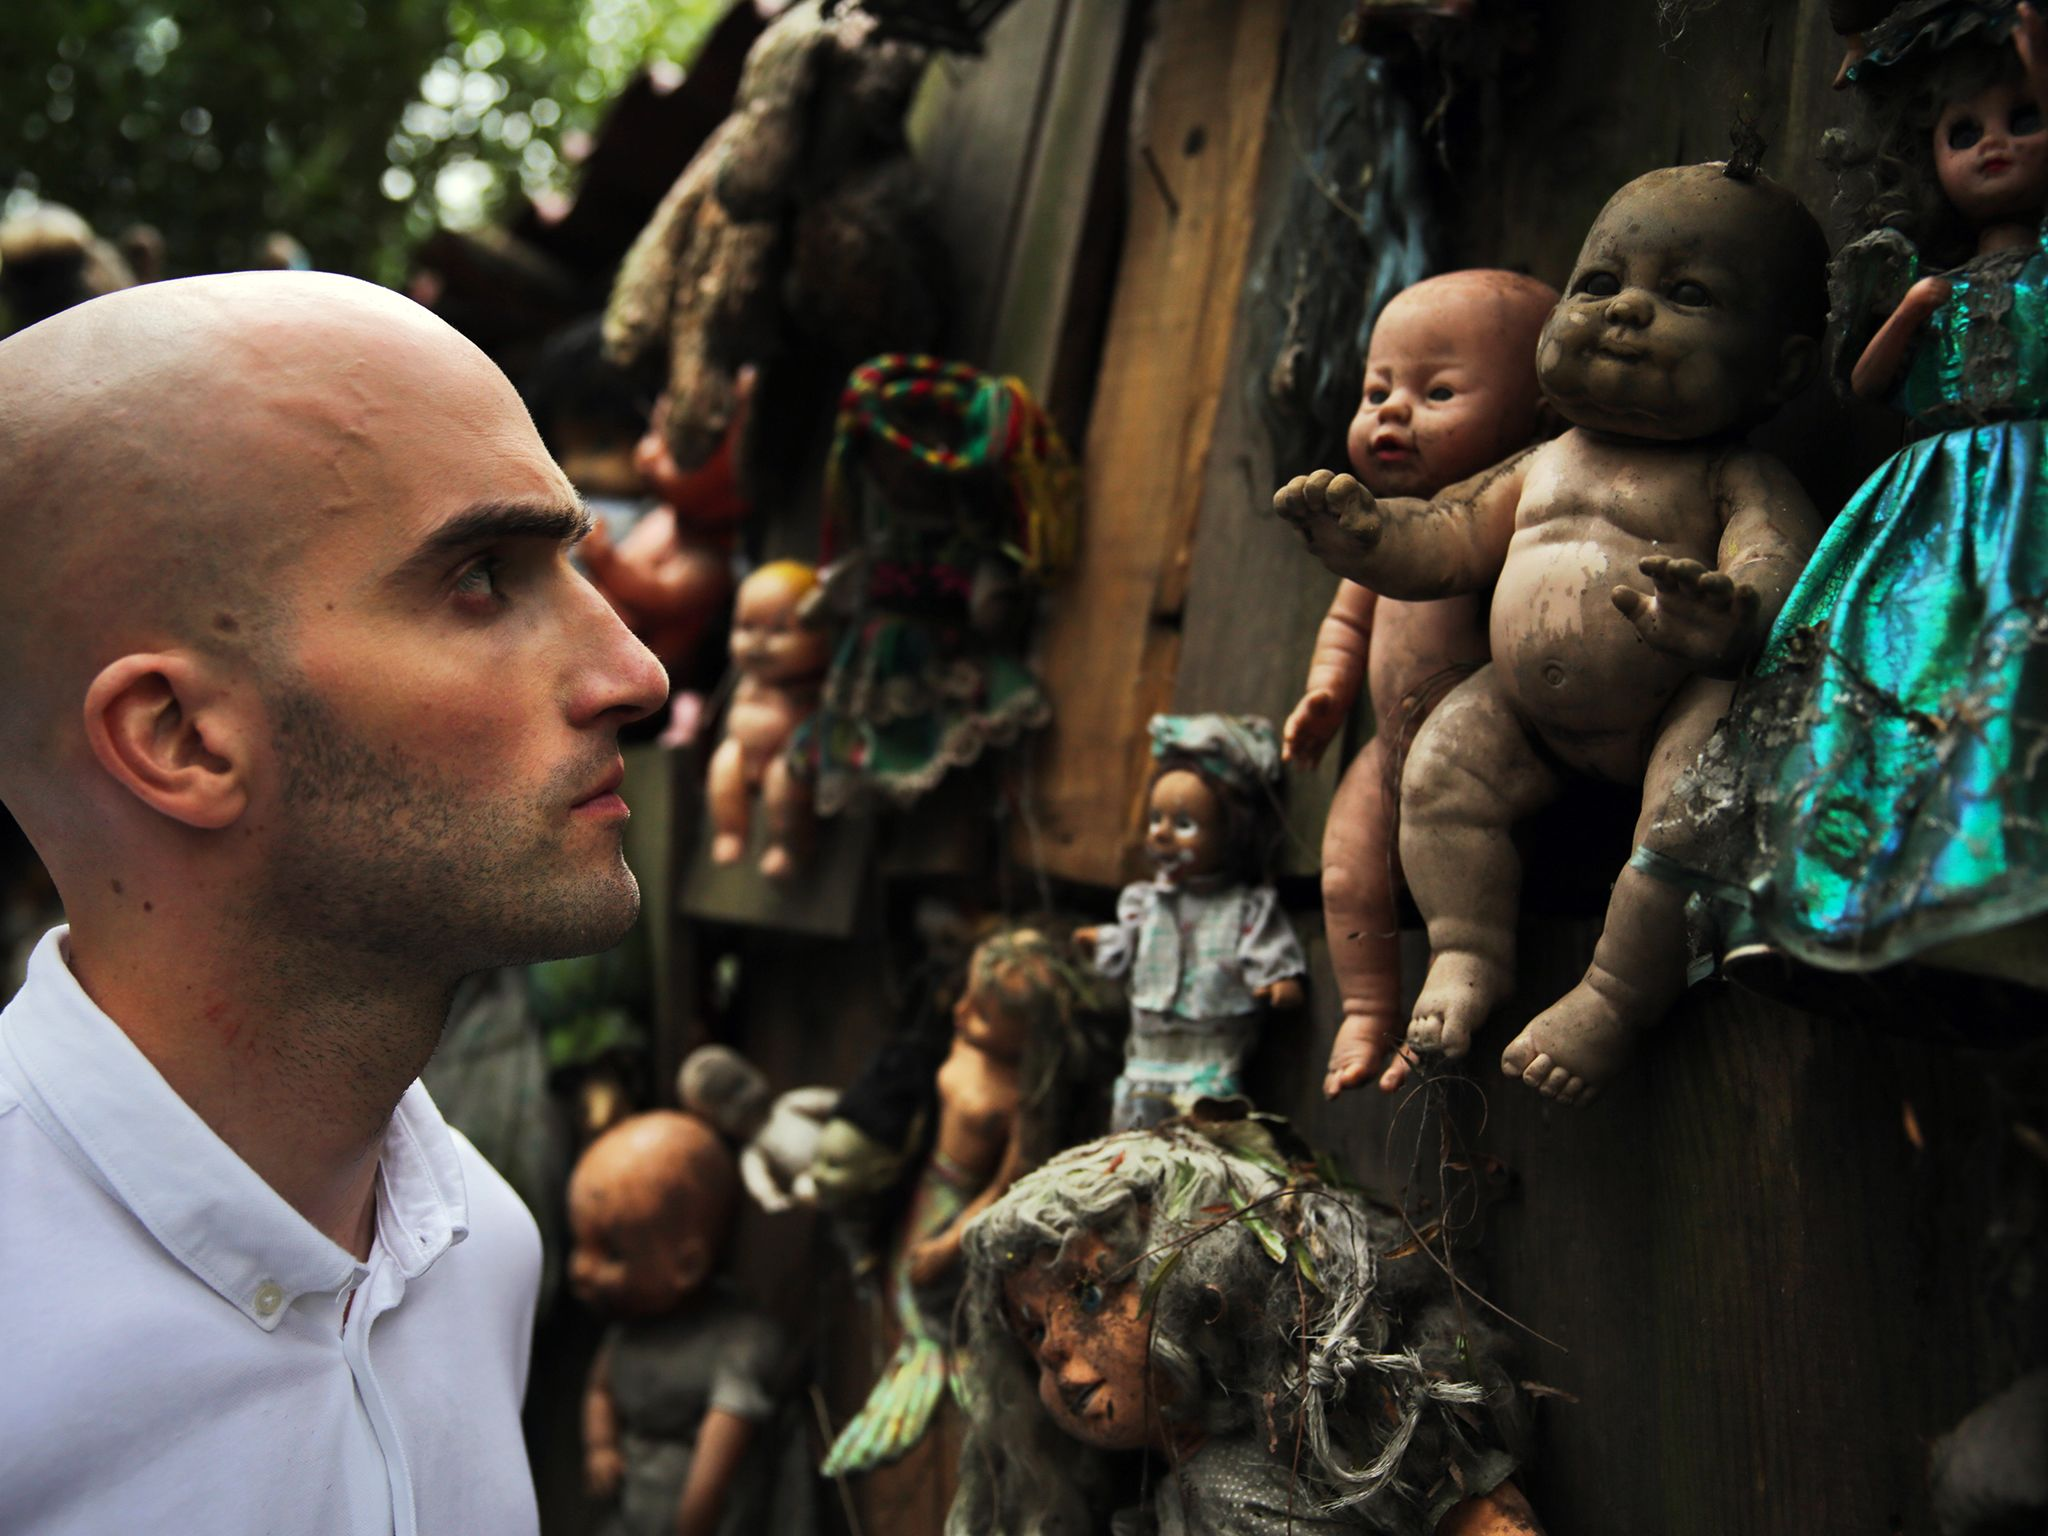 Isla de las Muñecas, Mexico City, Mexico -  DMC at Doll Island among dolls and trees. In the... [Photo of the day - 十一月 2014]